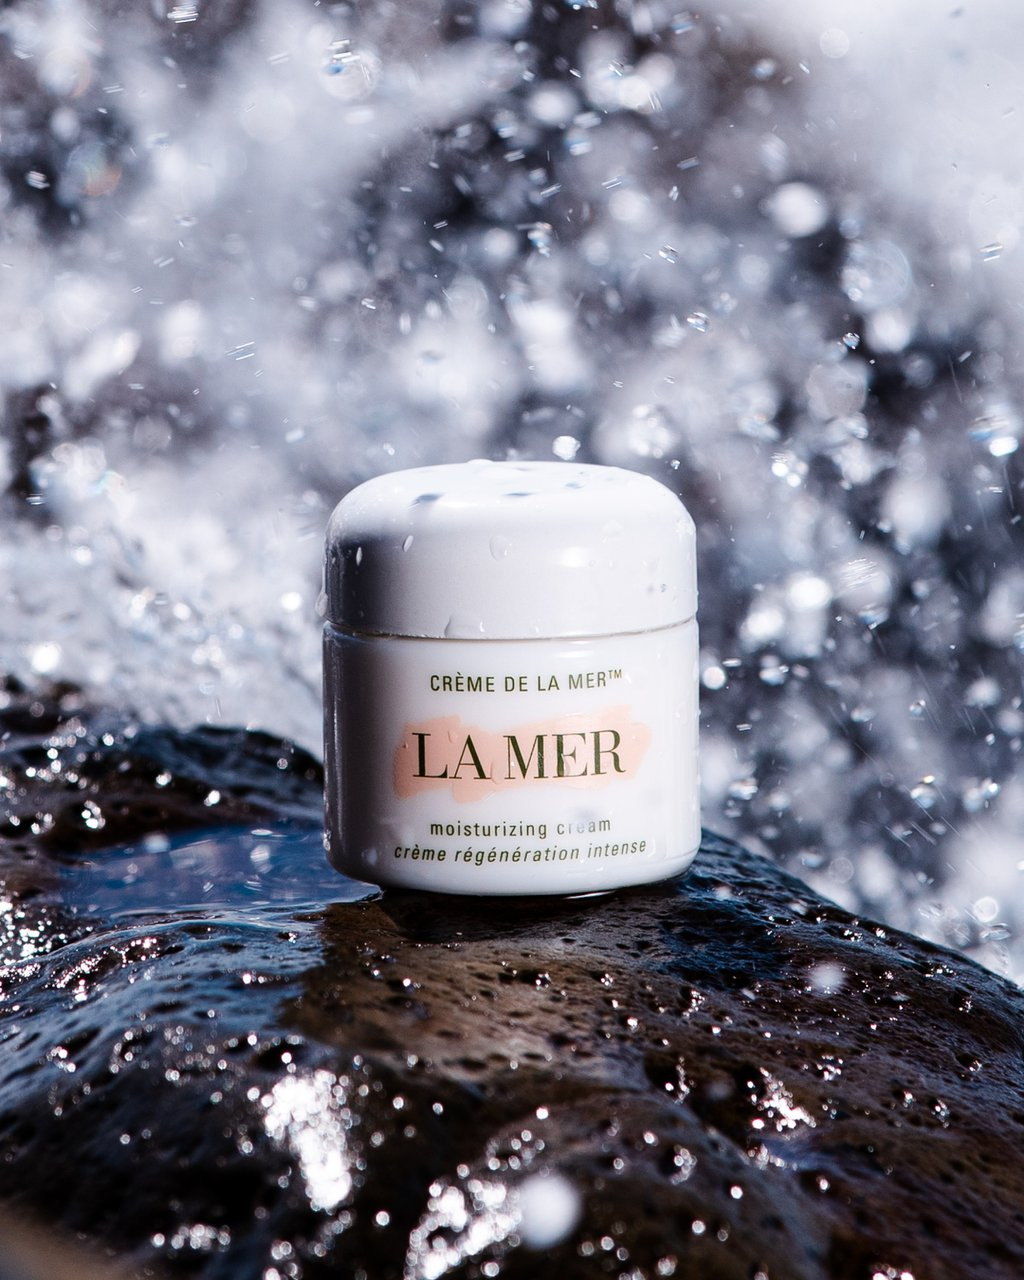 La Mer Arrive Hydrated photo LM CREME 3.jpg